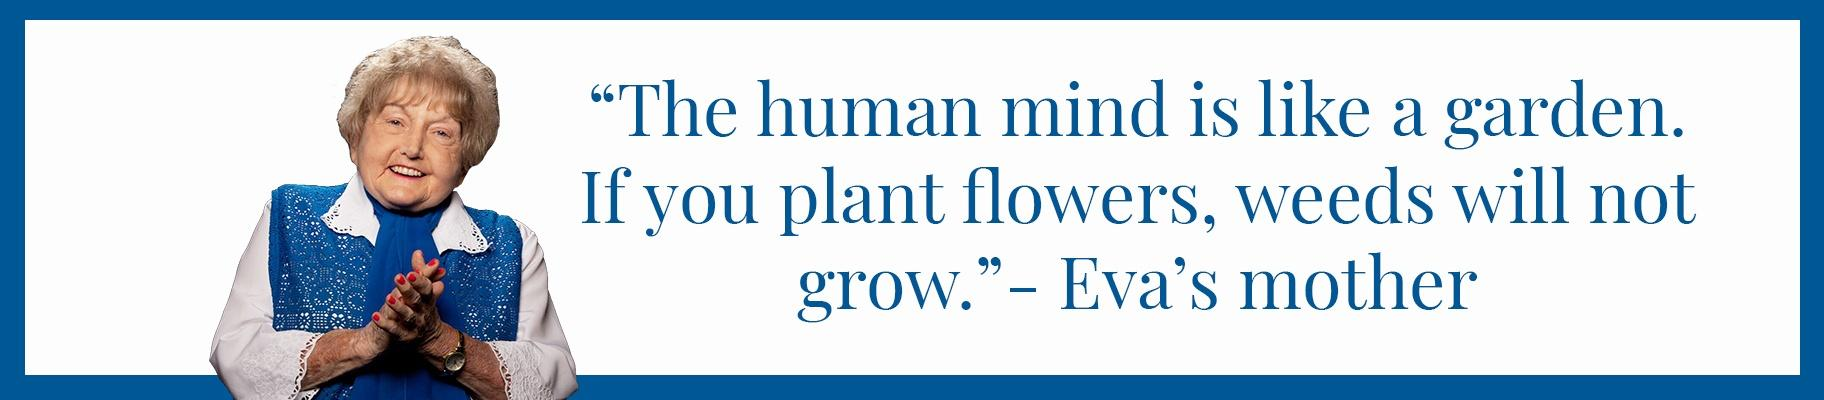 """The human mind is like a garden. If you plant flowers, weeds will not grow."" - Eva's mother"